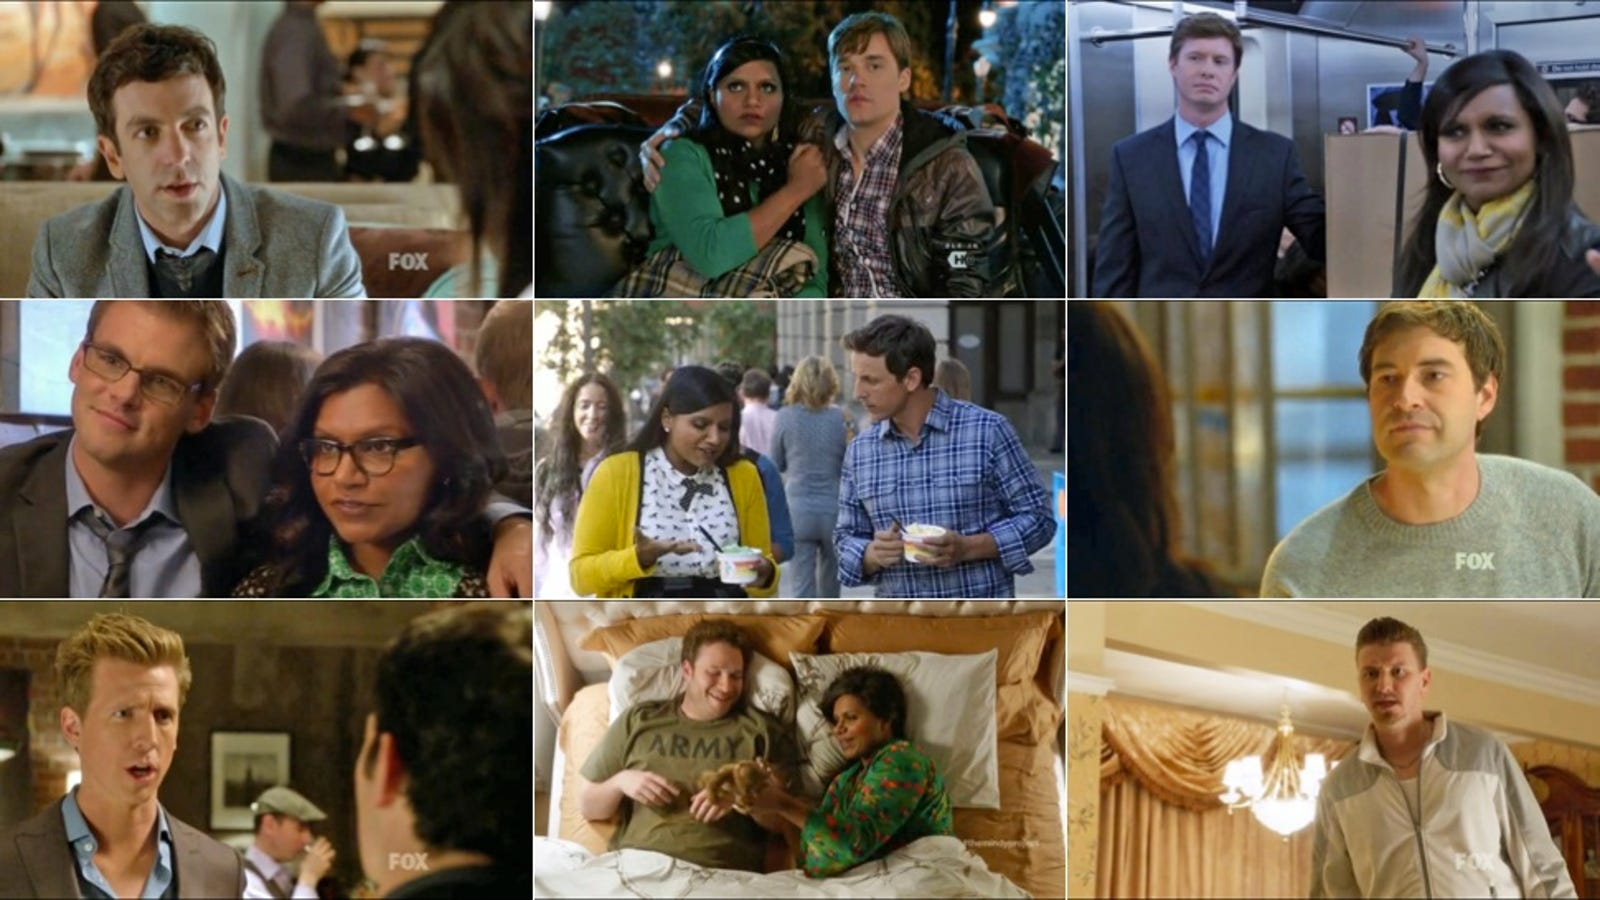 Mindy Kaling Only Makes Out With White Guys on The Mindy Project